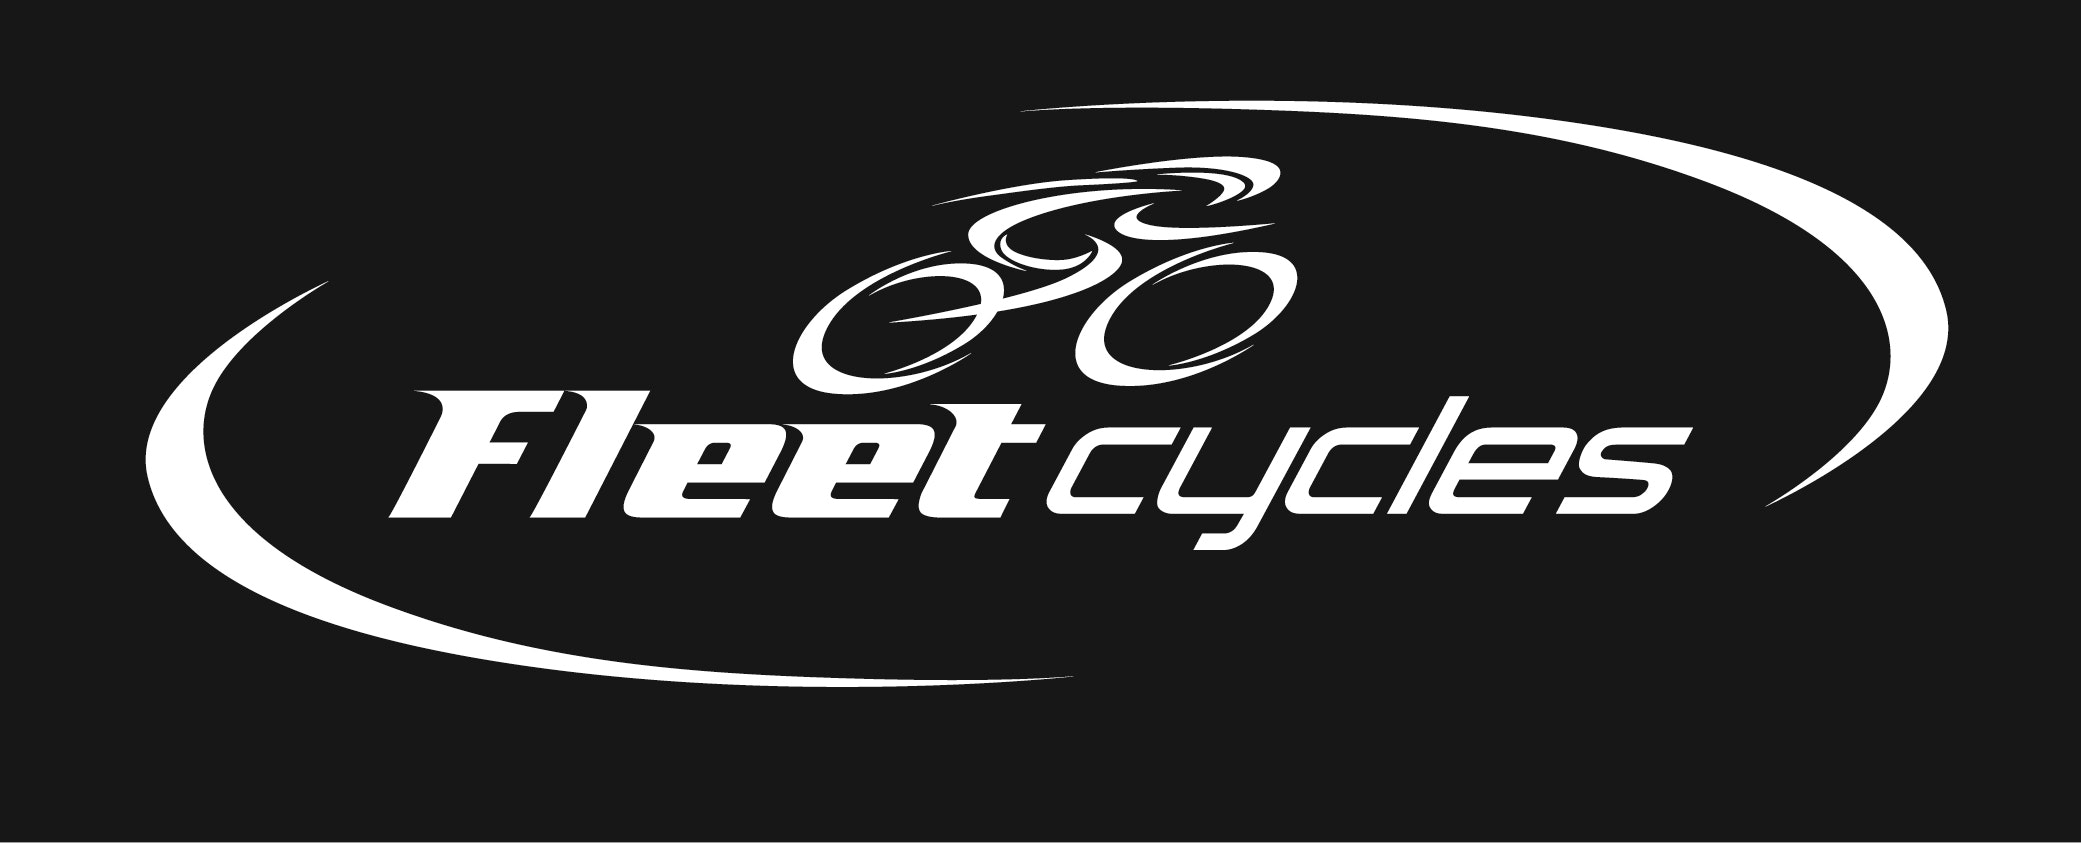 Fleet Cycles, Mandurah